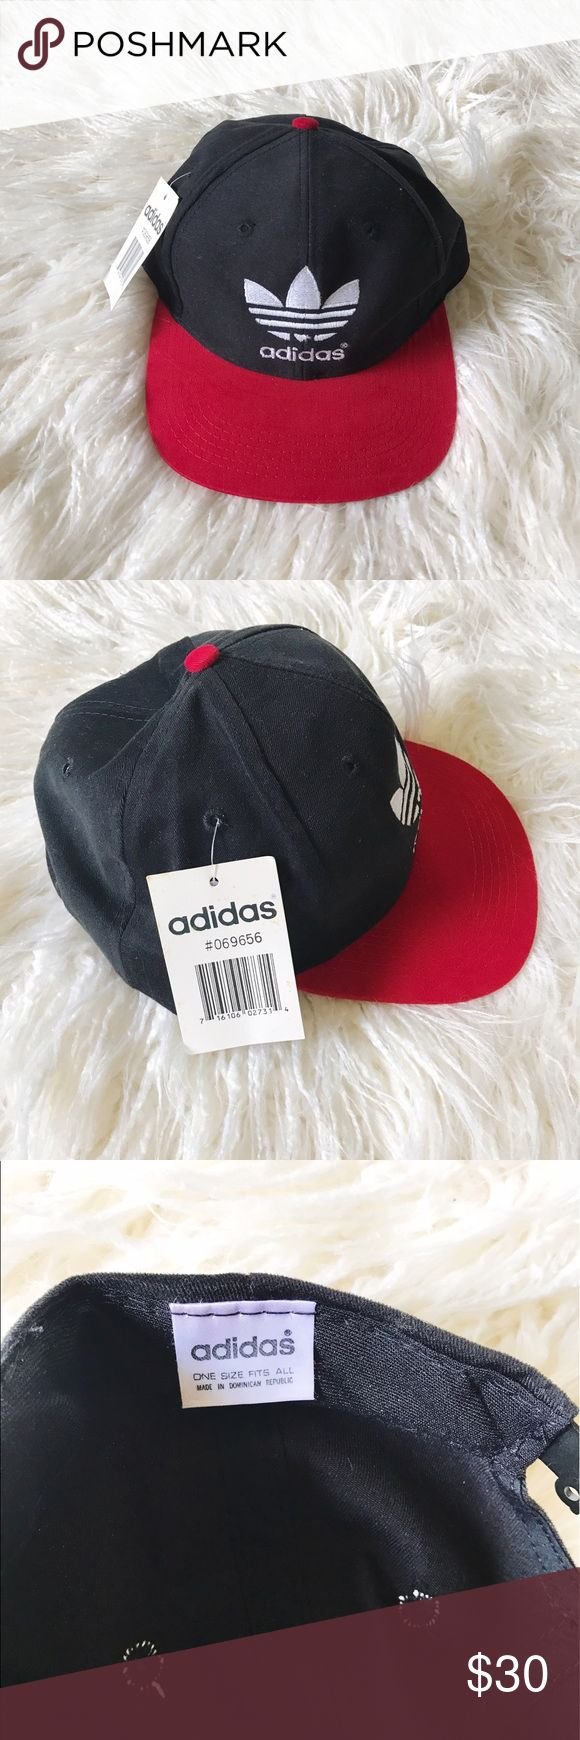 Old School Adidas Snapback Old School Adidas Snapback❤️ Trending now! A fun cap to wear with athletic wear or weekend outfits! Black and red with white Adidas logo. Also has a really cool snap with Adidas written on it don't miss out on the look!✨ Adidas Accessories Hats